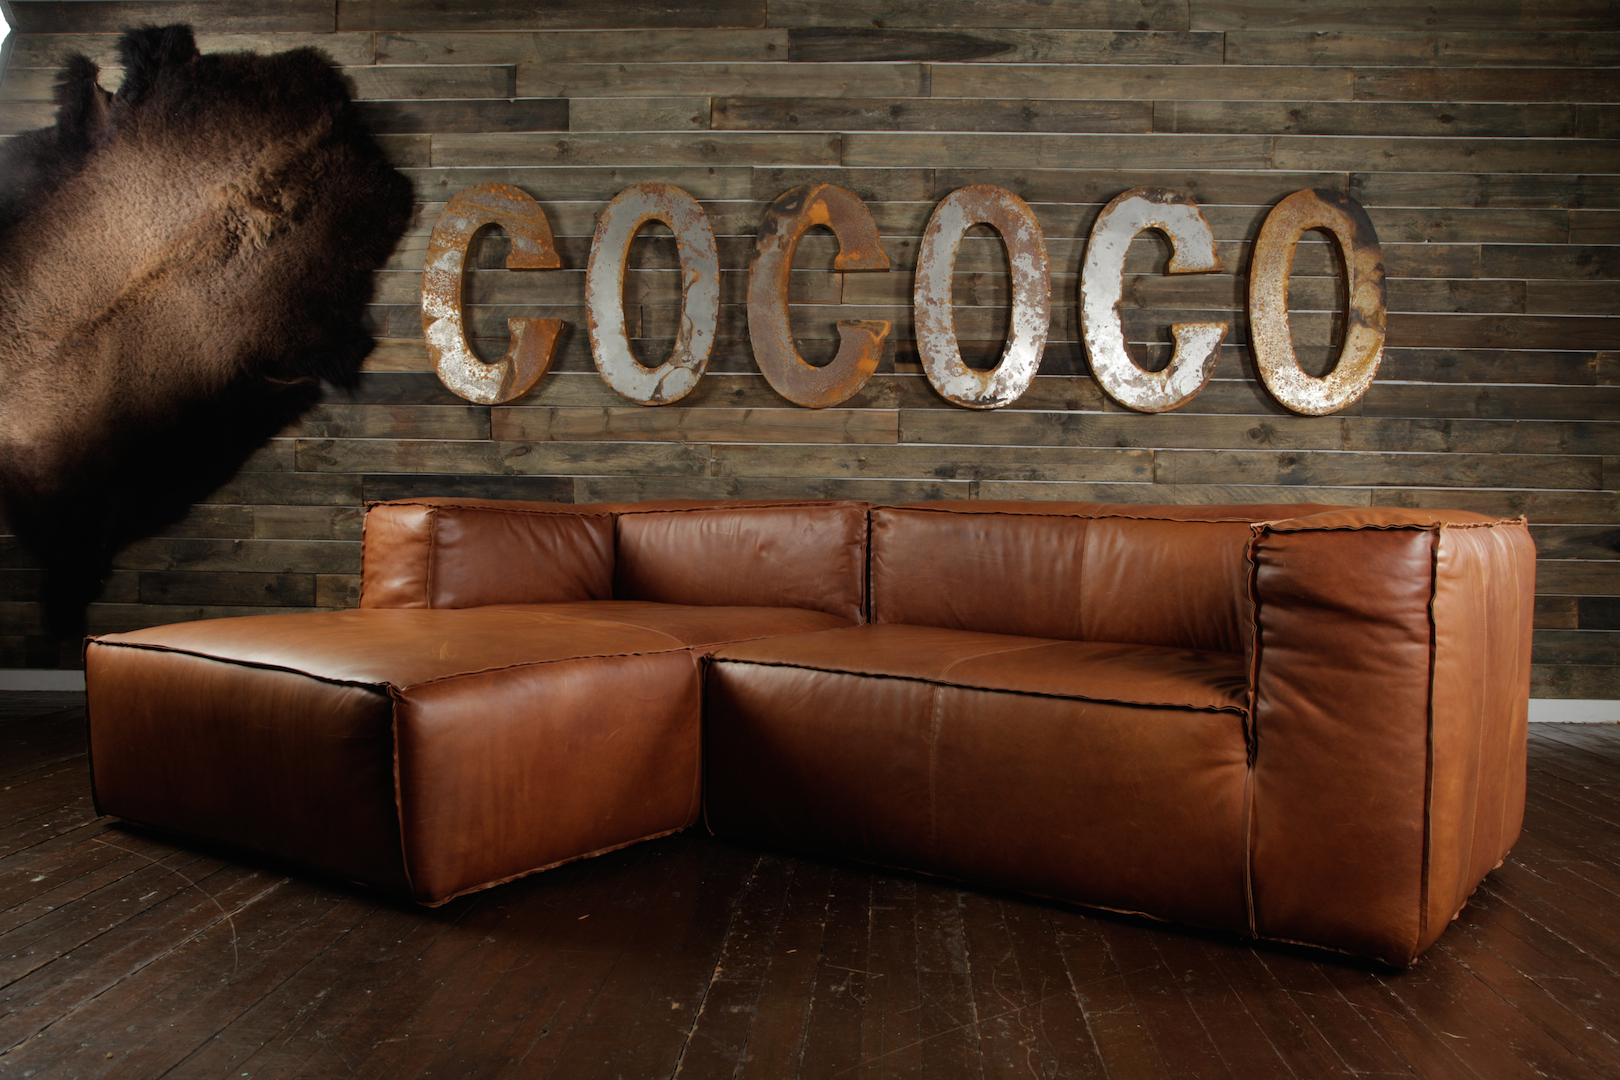 ... Most Comfortable Couch Everu2014all At An Incredible Price. Image